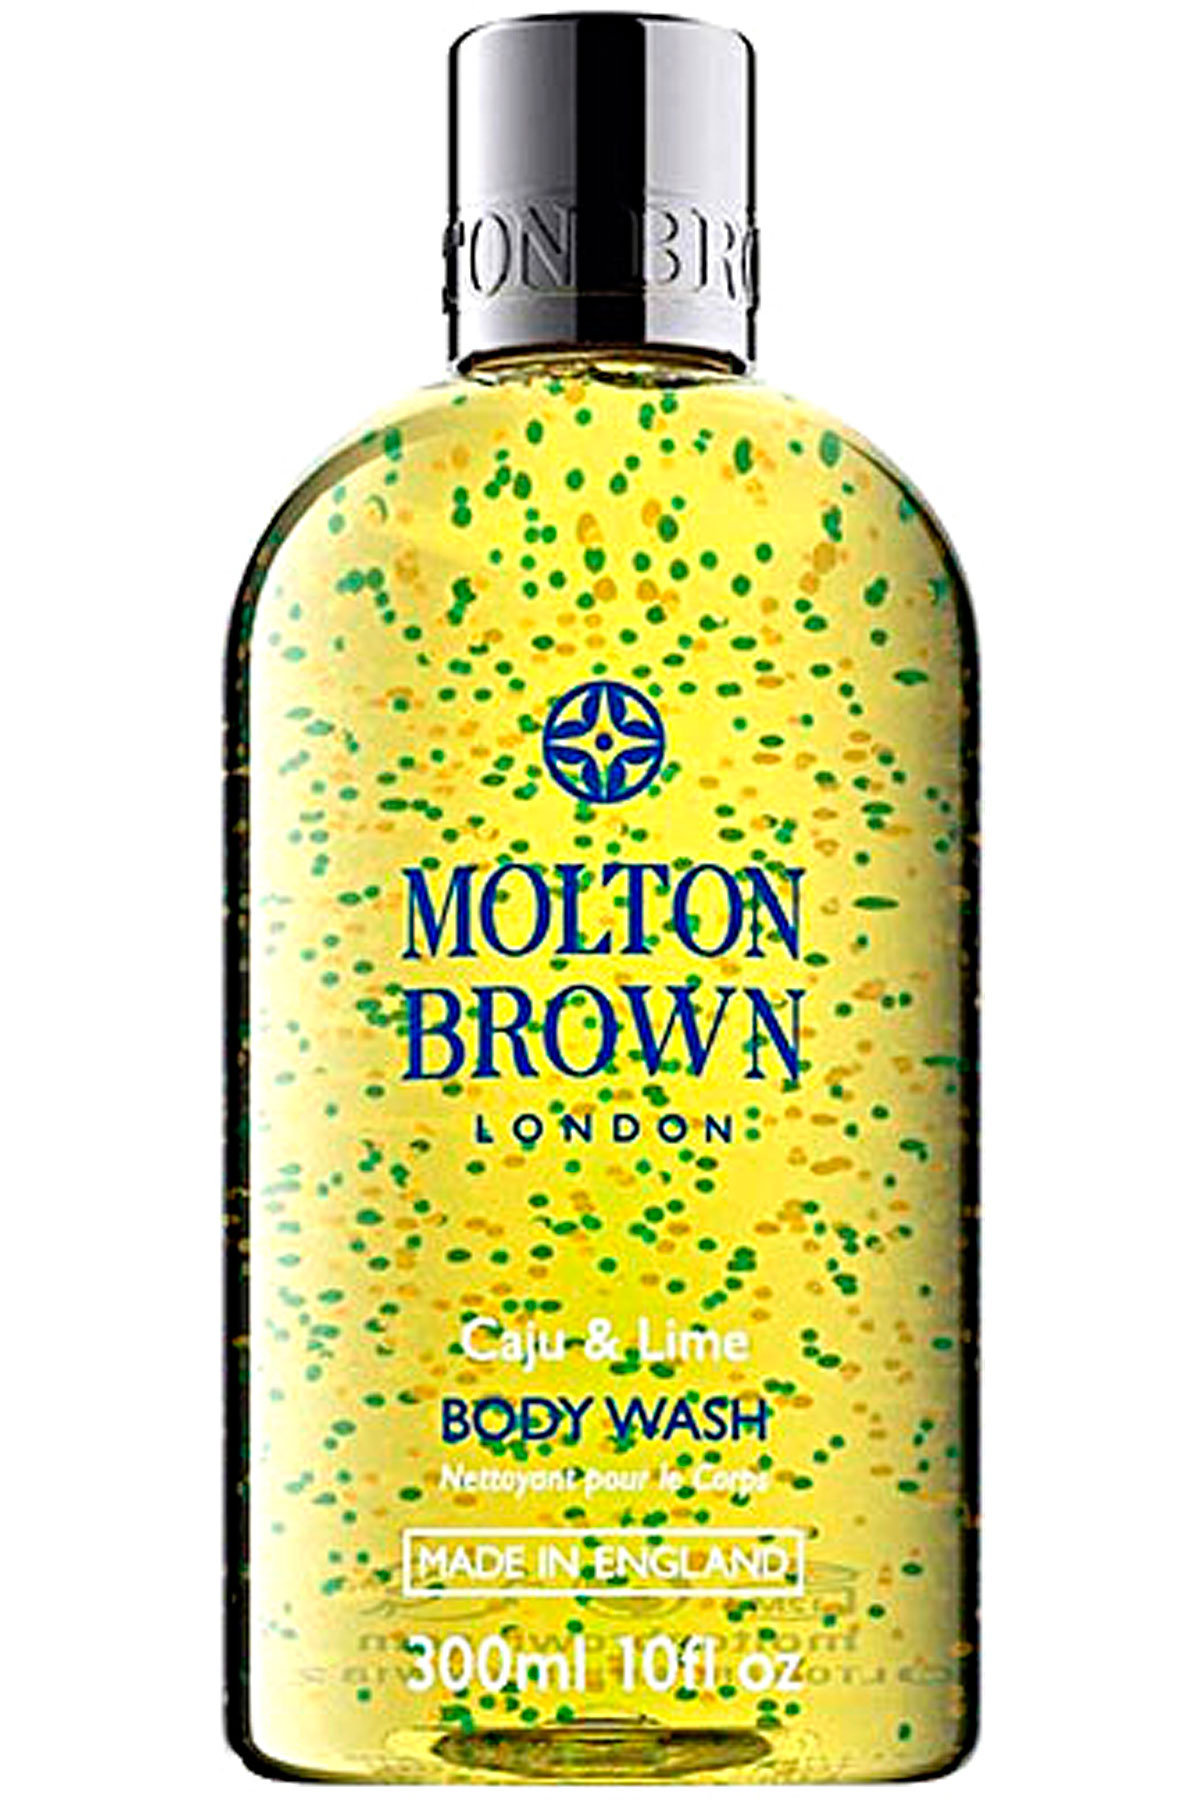 Molton Brown Beauty for Men, Caju & Lime - Body Wash - 300 Ml, 2019, 300 ml